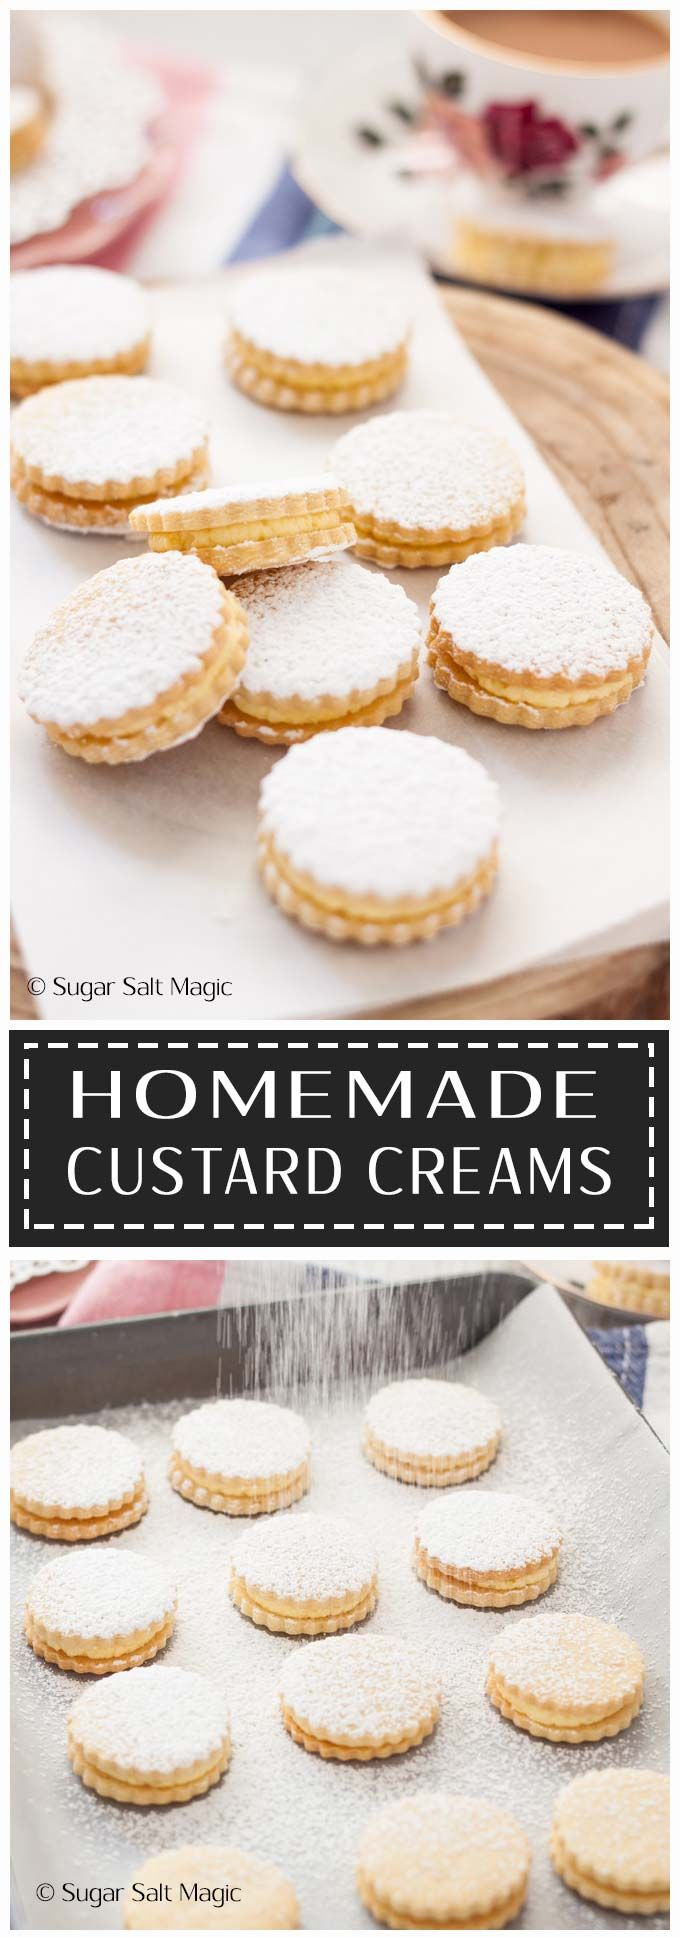 Homemade Custard Creams are delightful sugar cookies filled with a custard flavoured buttercream. #custard #custardcreams #Cookies #sandwichcookies #afternoontea #desserts #sweets #buttercream via @sugarsaltmagic